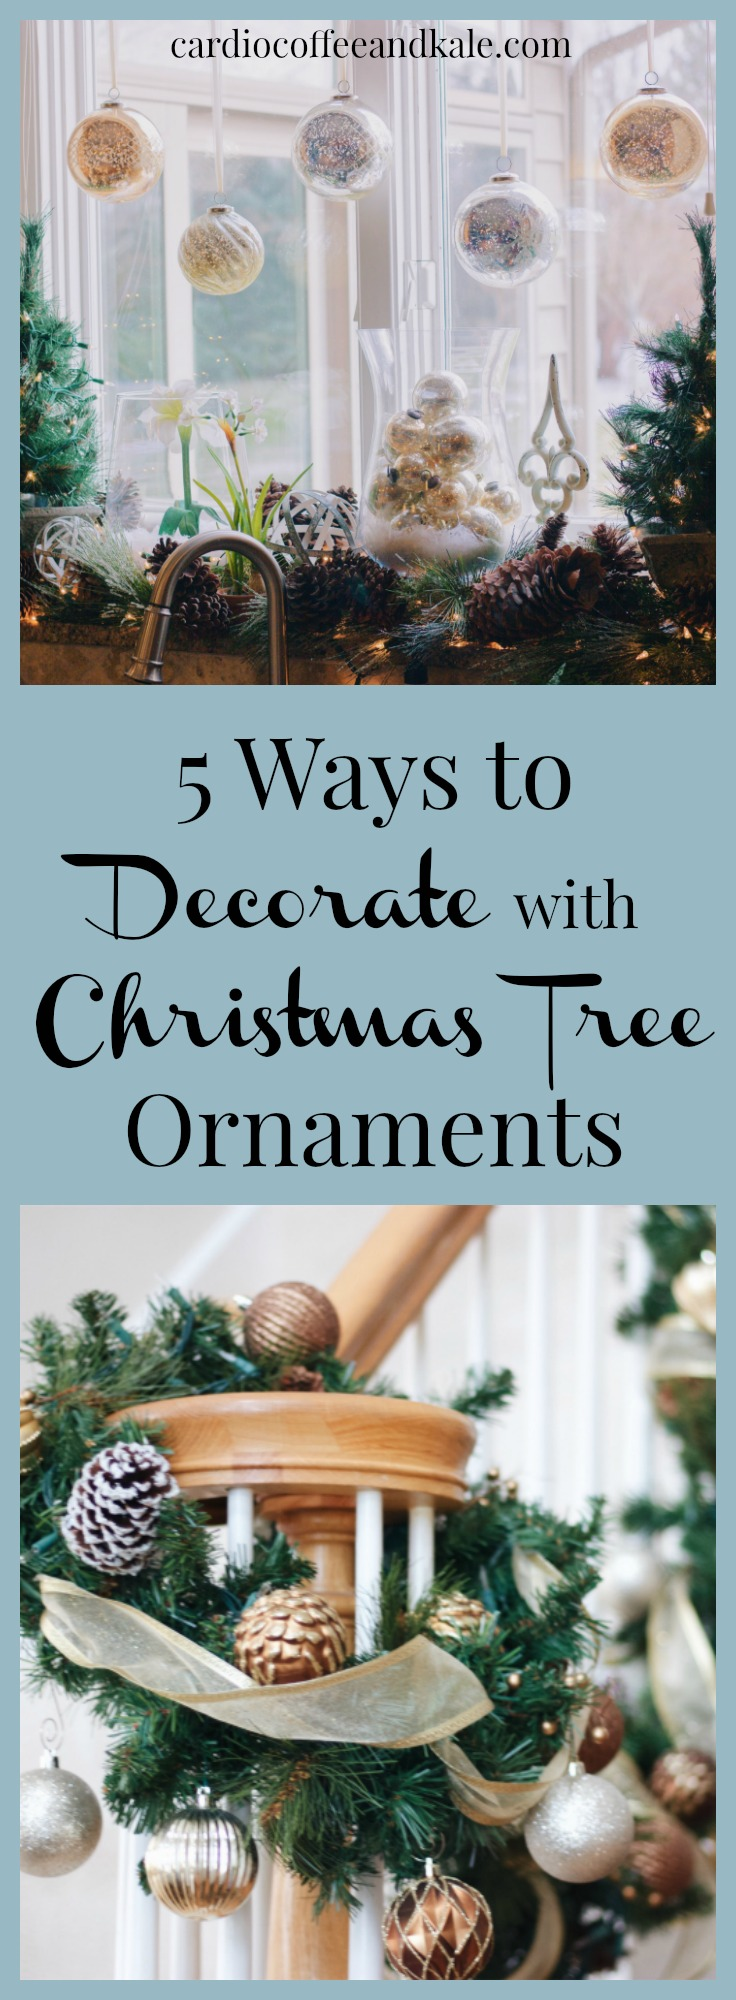 Ways To Decorate With Christmas Tree Ornaments  Cardio Coffee And